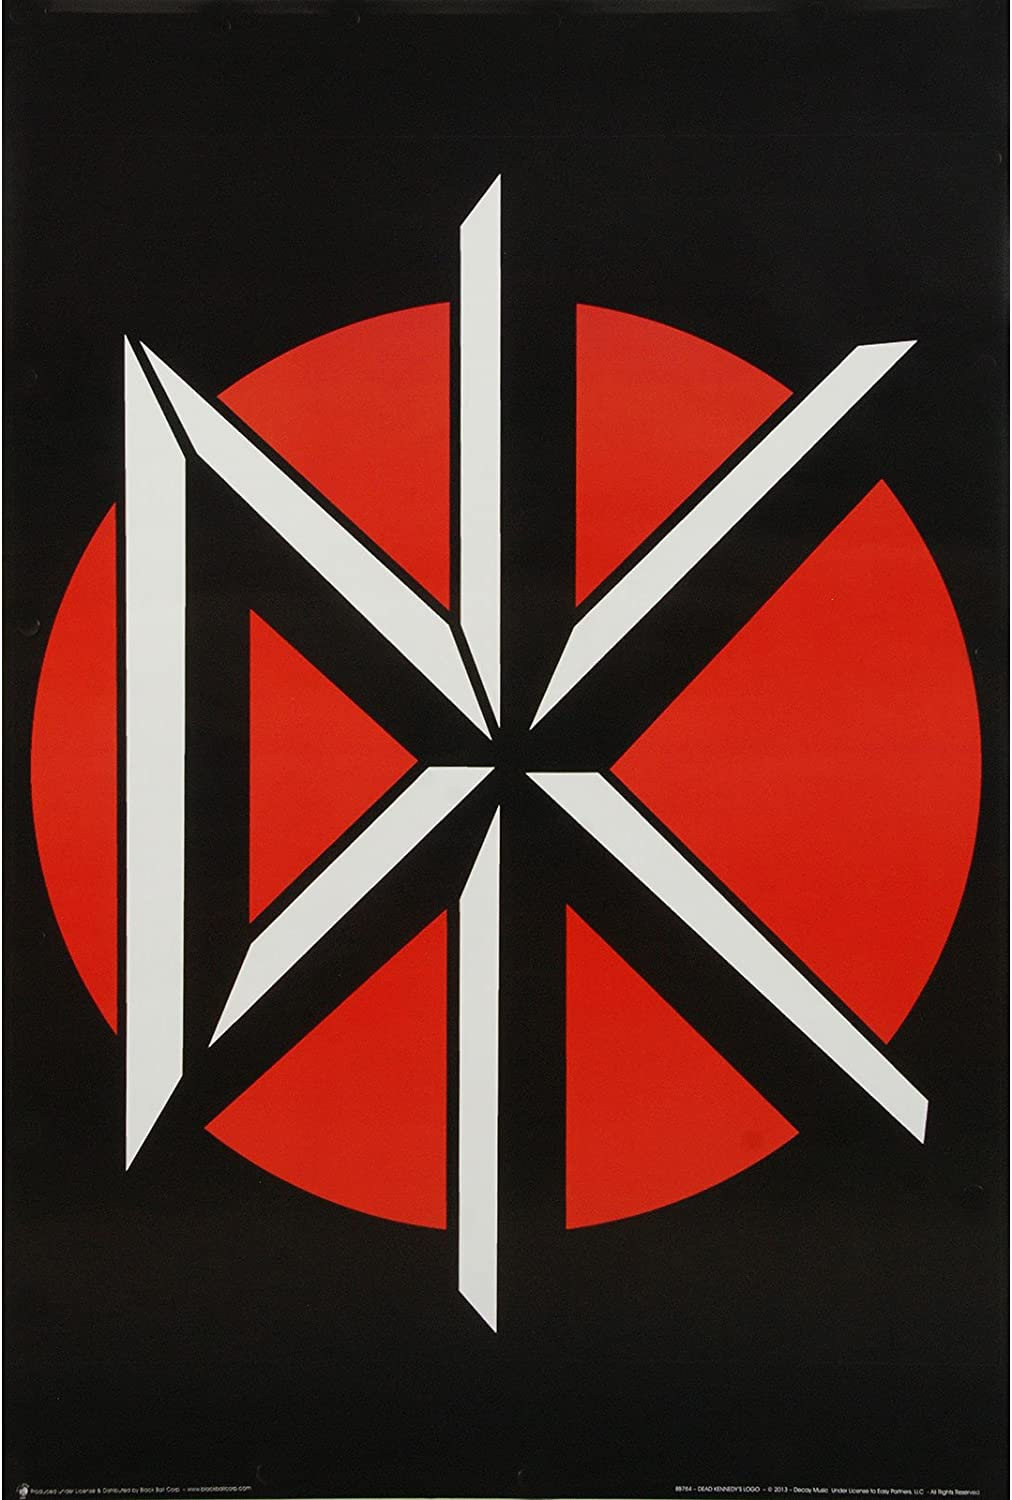 Dead Kennedys Old English DK Logo Poster